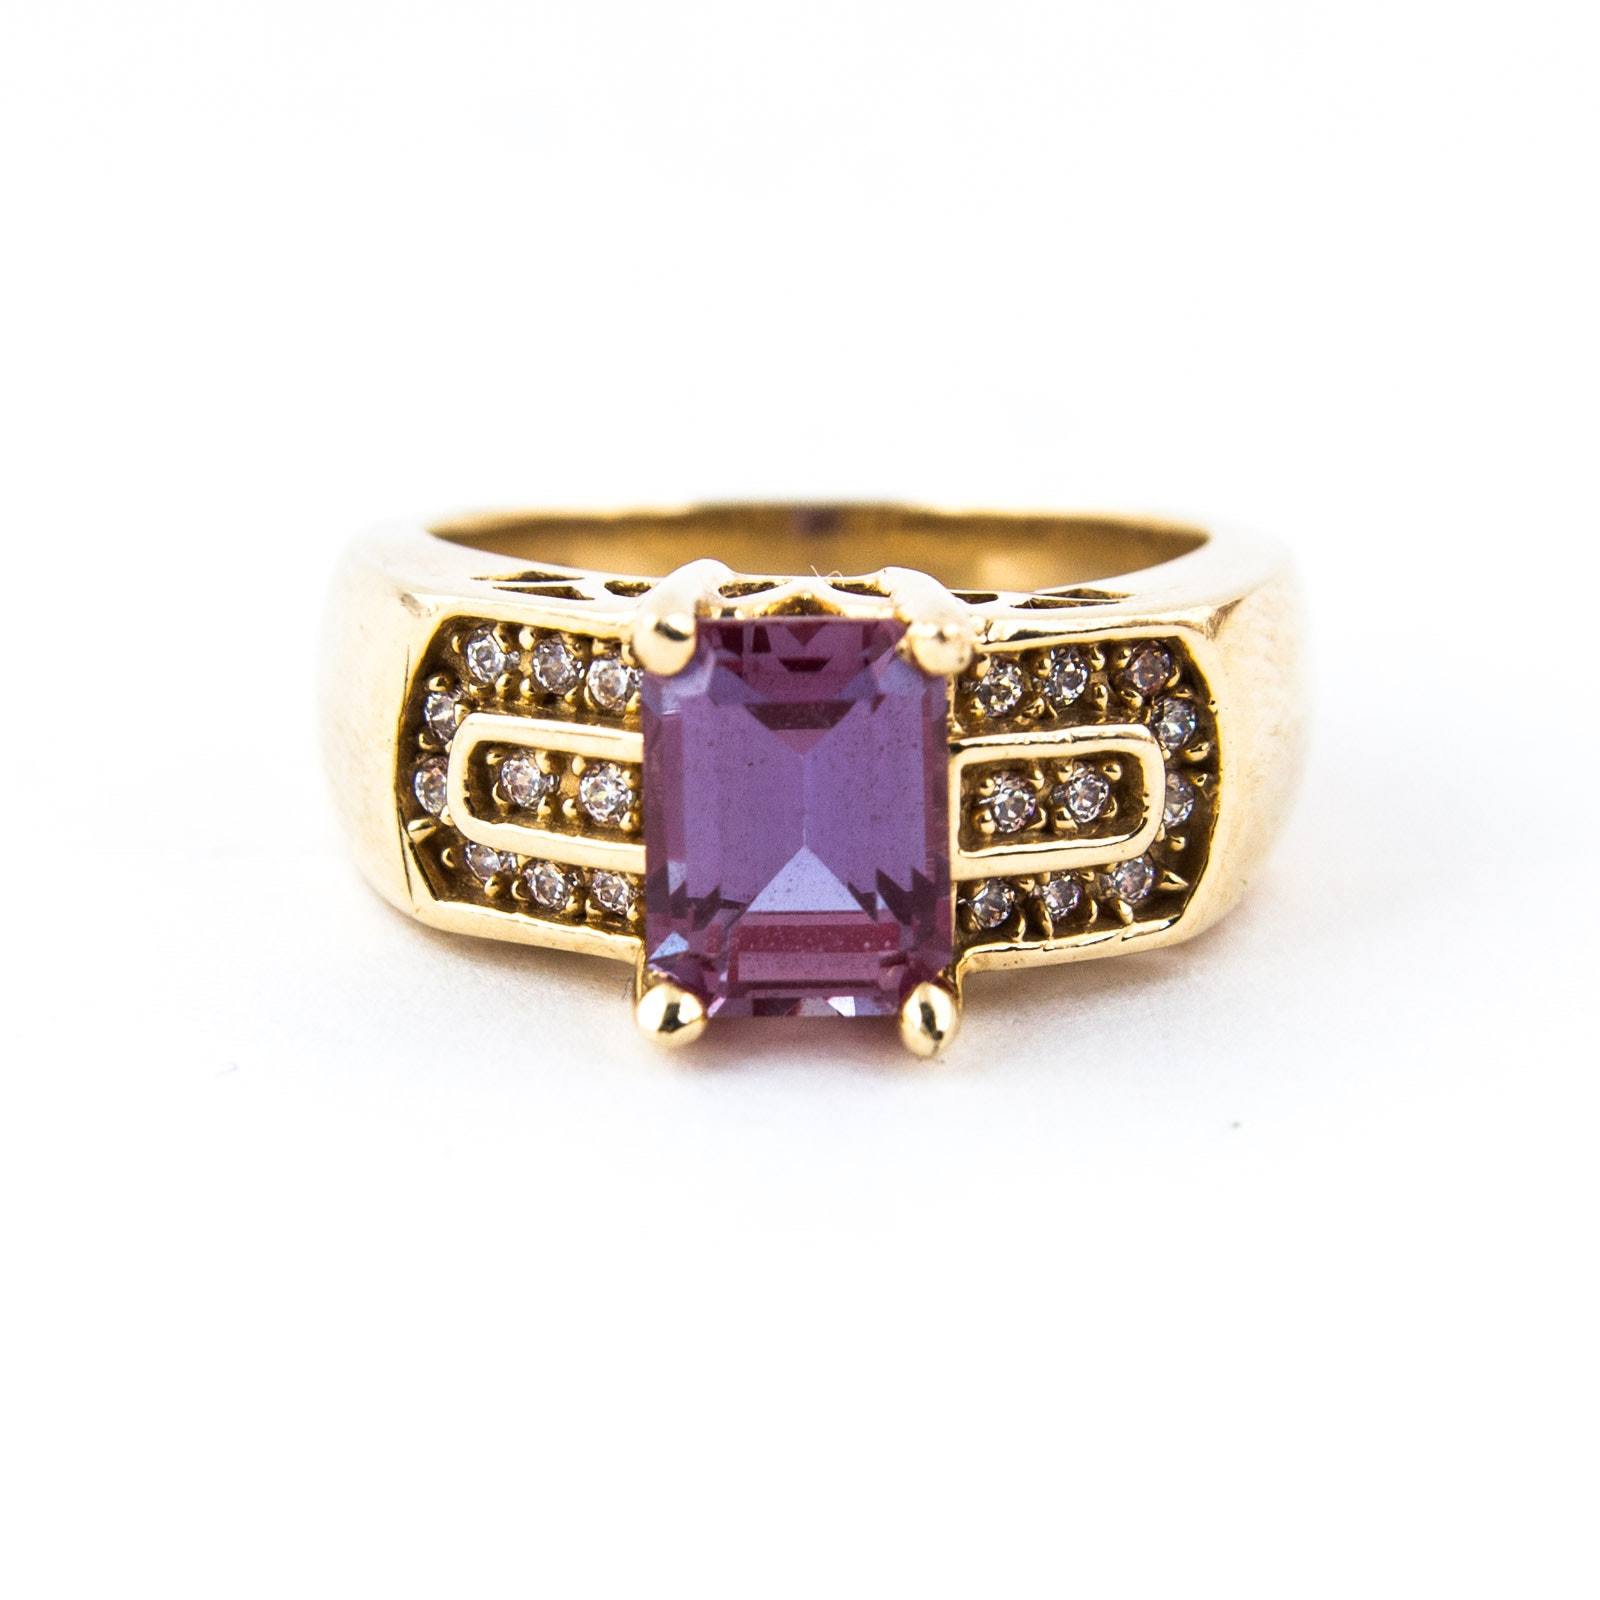 14K Yellow Gold, Alexandrite, and Cubic Zirconia Ring